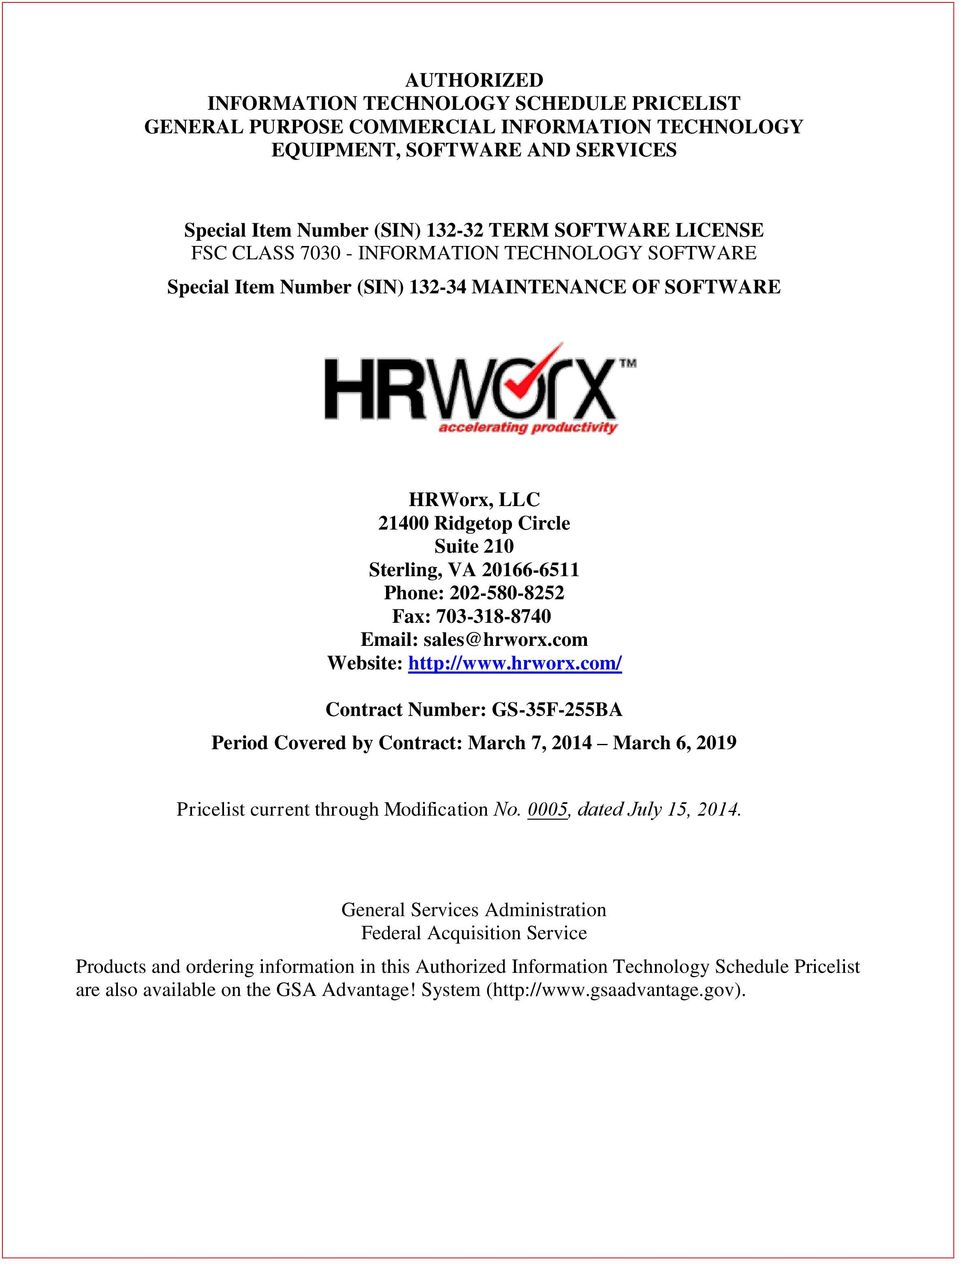 703-318-8740 Email: sales@hrworx.com Website: http://www.hrworx.com/ Contract Number: GS-35F-255BA Period Covered by Contract: March 7, 2014 March 6, 2019 Pricelist current through Modification No.